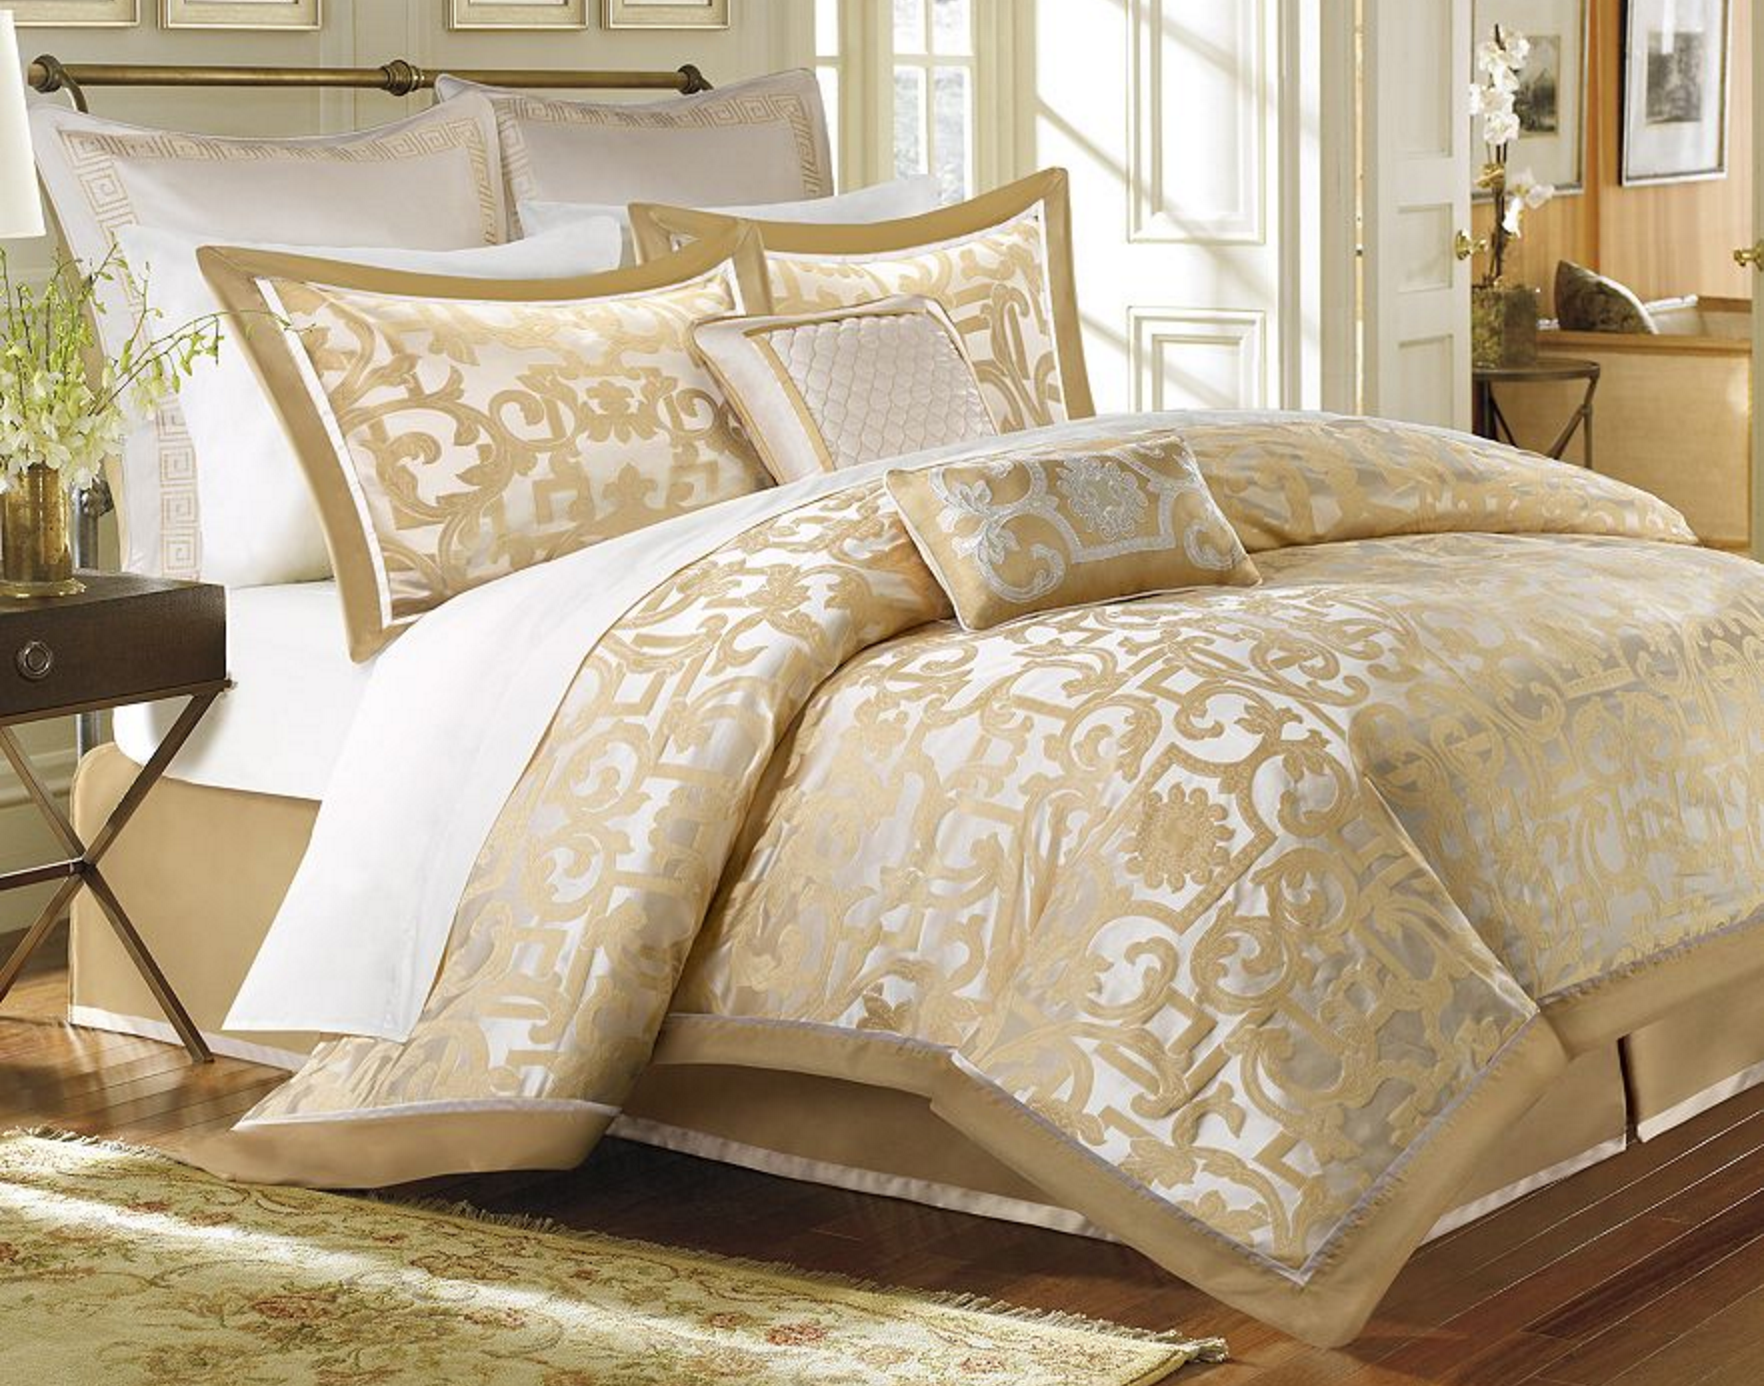 Kohl's: 50-60% Off Select Bedding!